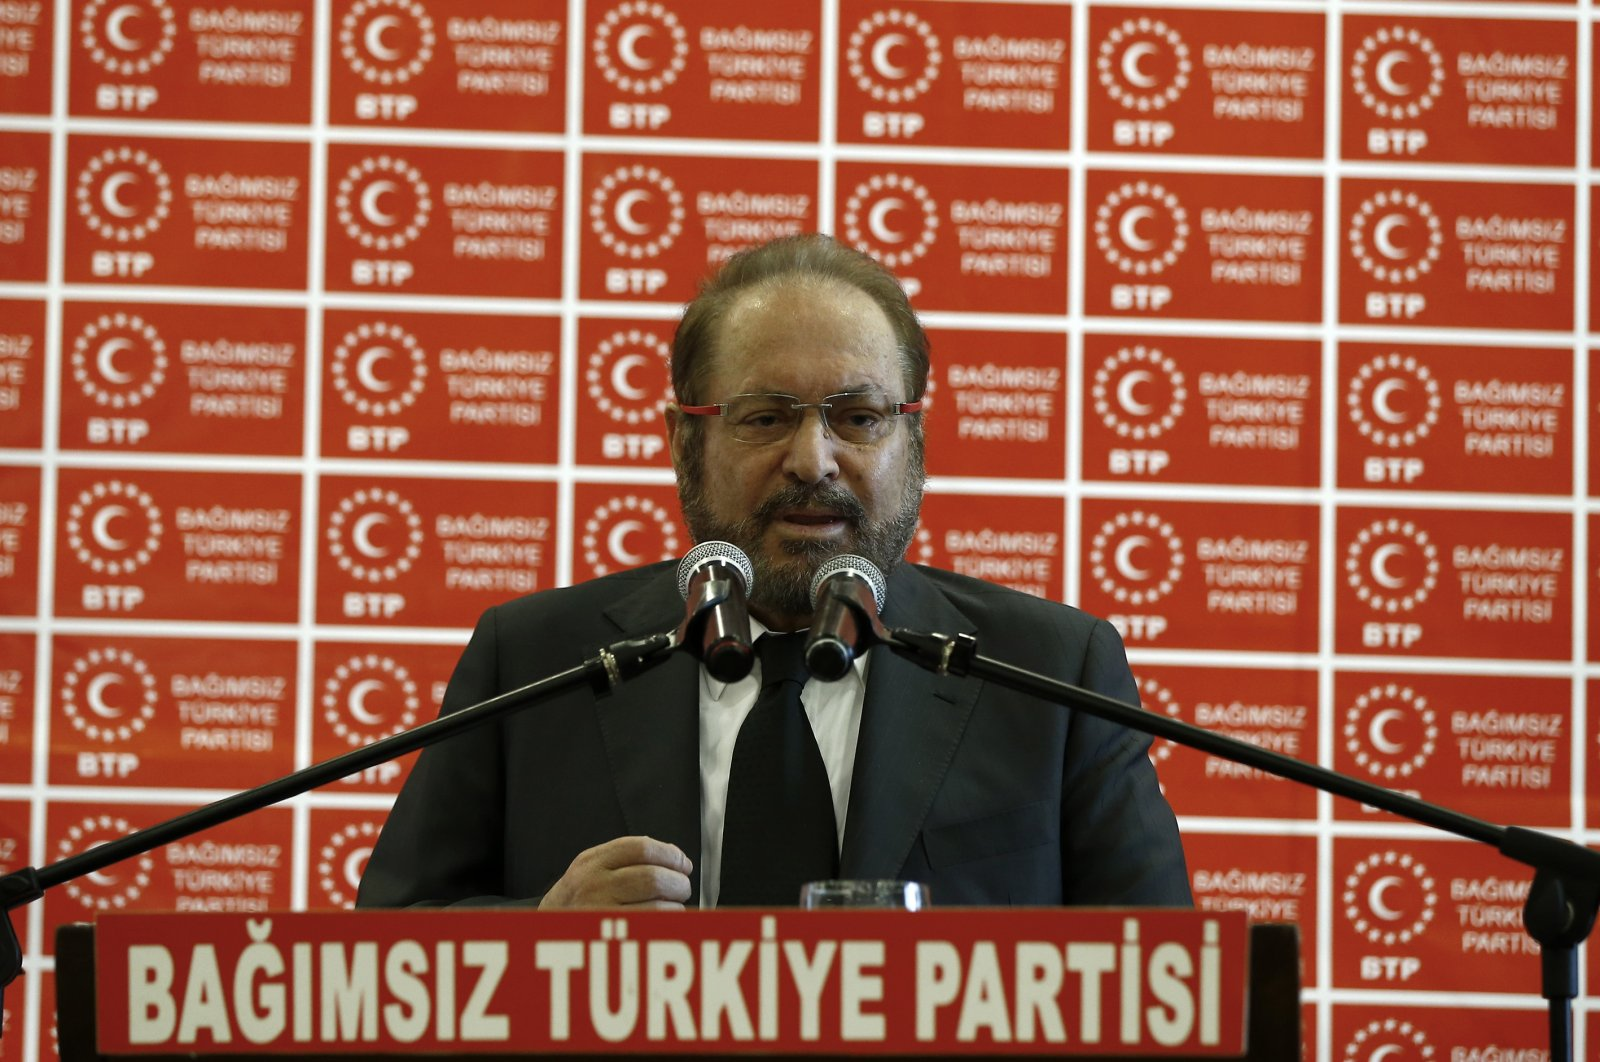 Haydar Baş, chairman of the Independent Turkey Party, speaks during a party congress, Oct. 20, 2019. (AA File Photo)